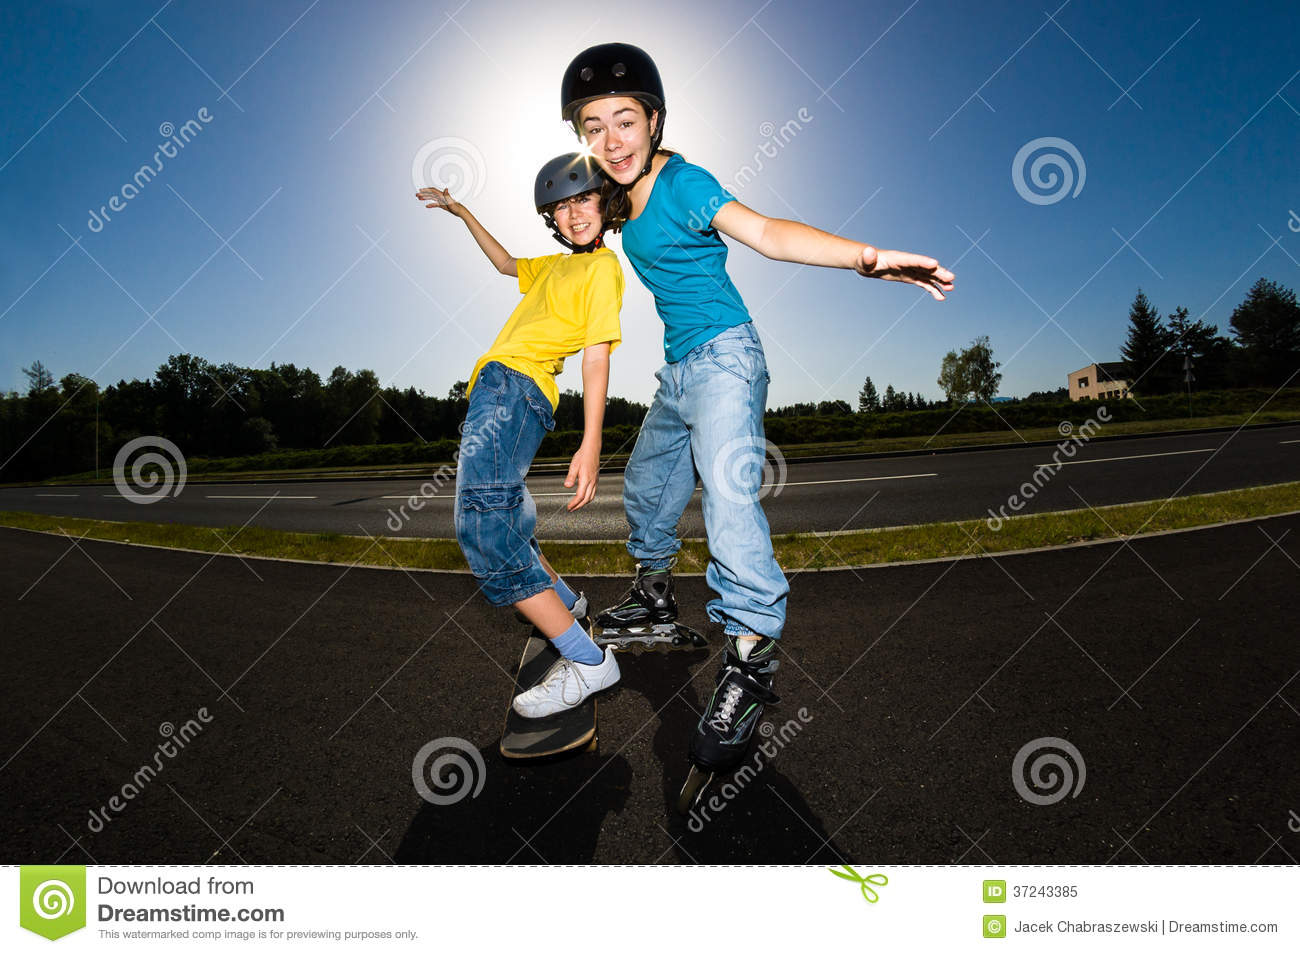 Agile Young Girl Roller Skating Stock Photo - Image of